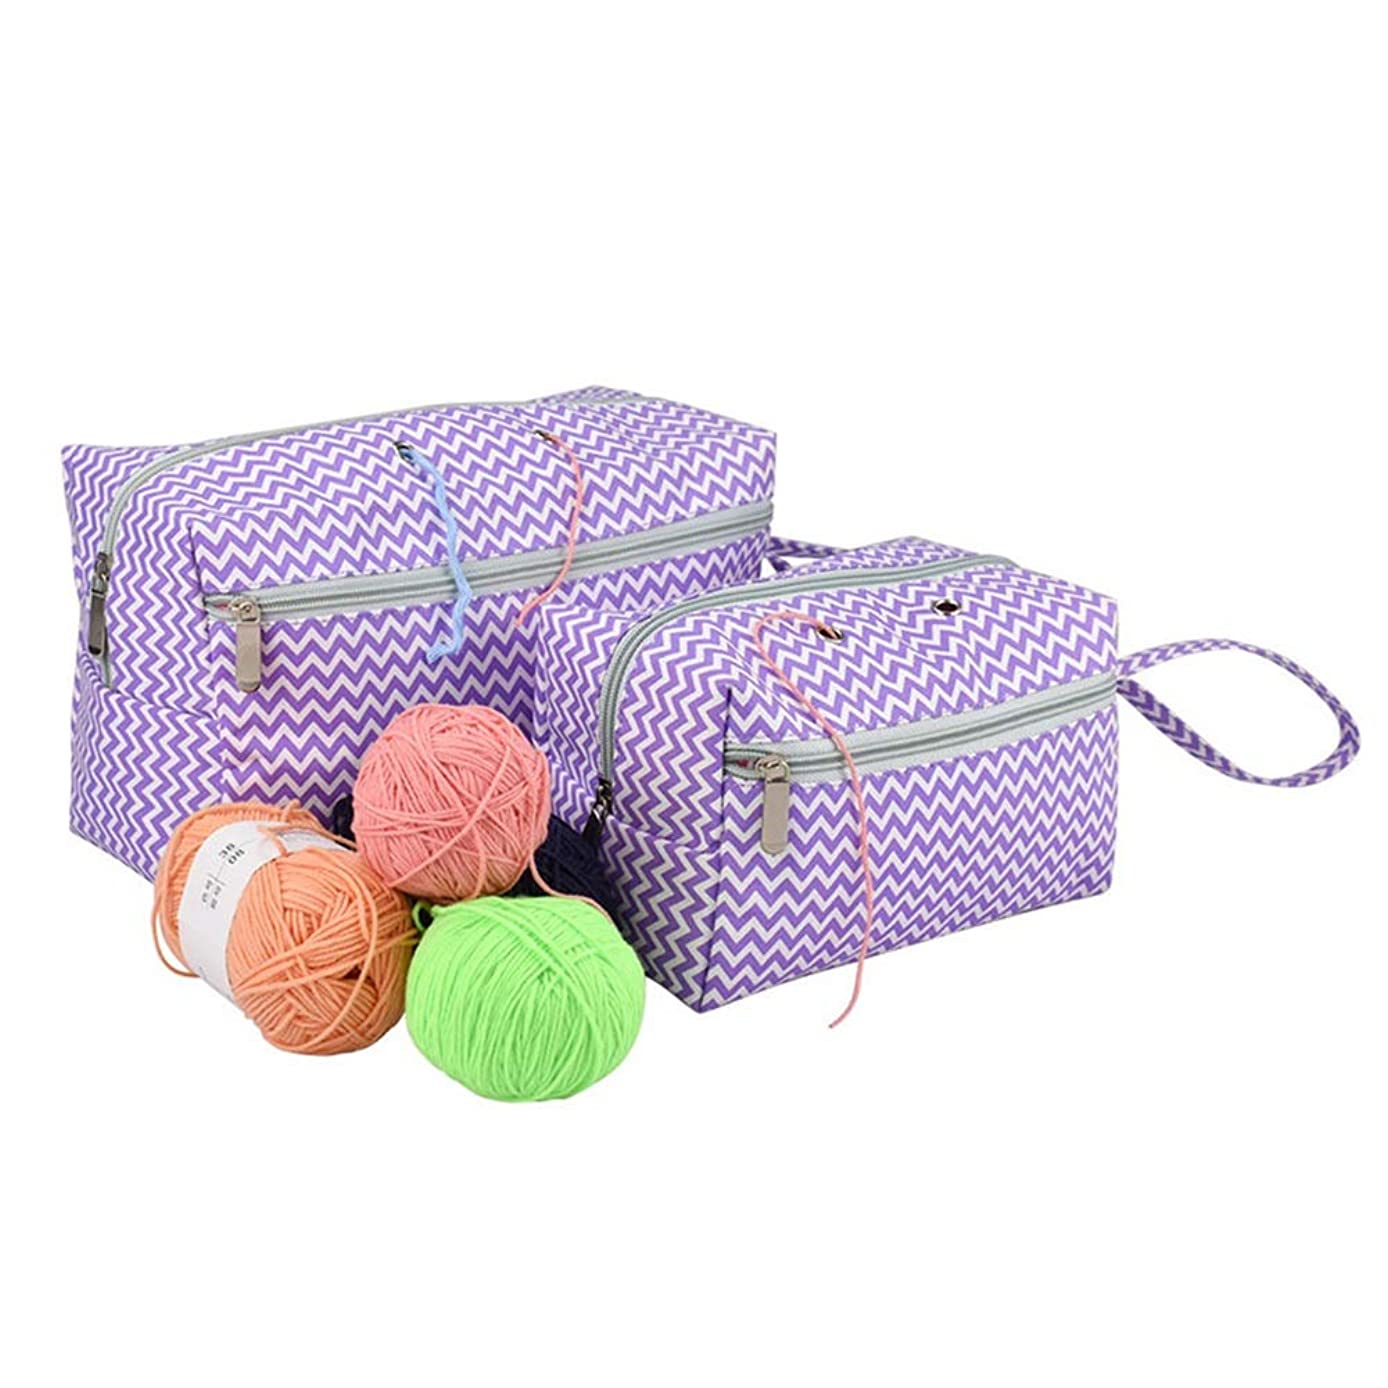 Small Knitting Bag, Yarn Storage Bag for Yarn Skeins, Crochet Hooks, Knitting Needles and Other Small Accessories, Travel Yarn Organizer (S + L)